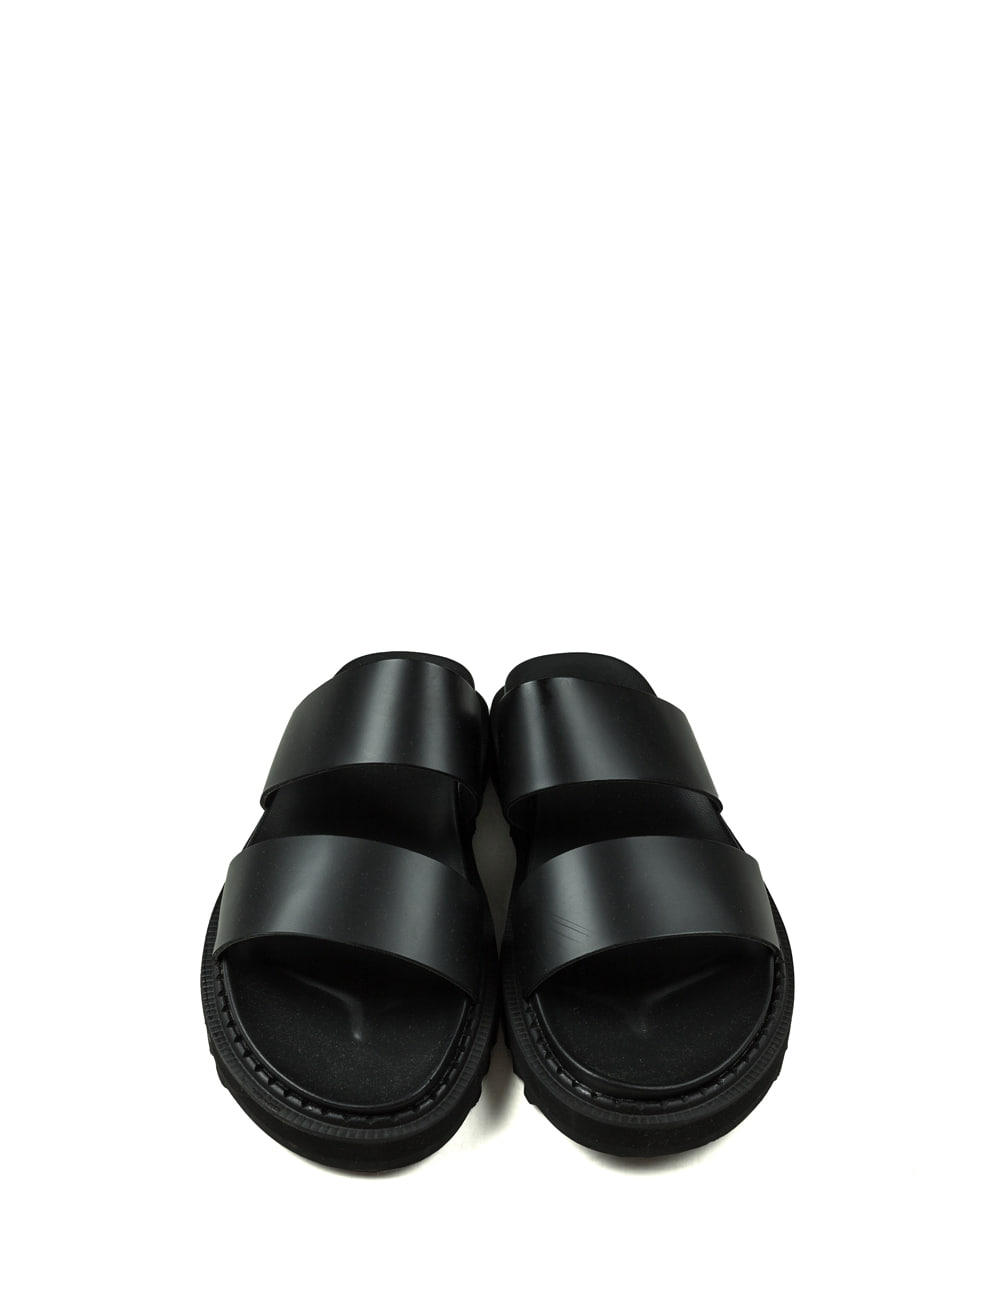 [handmade shoes]  14 슬리퍼 (black)